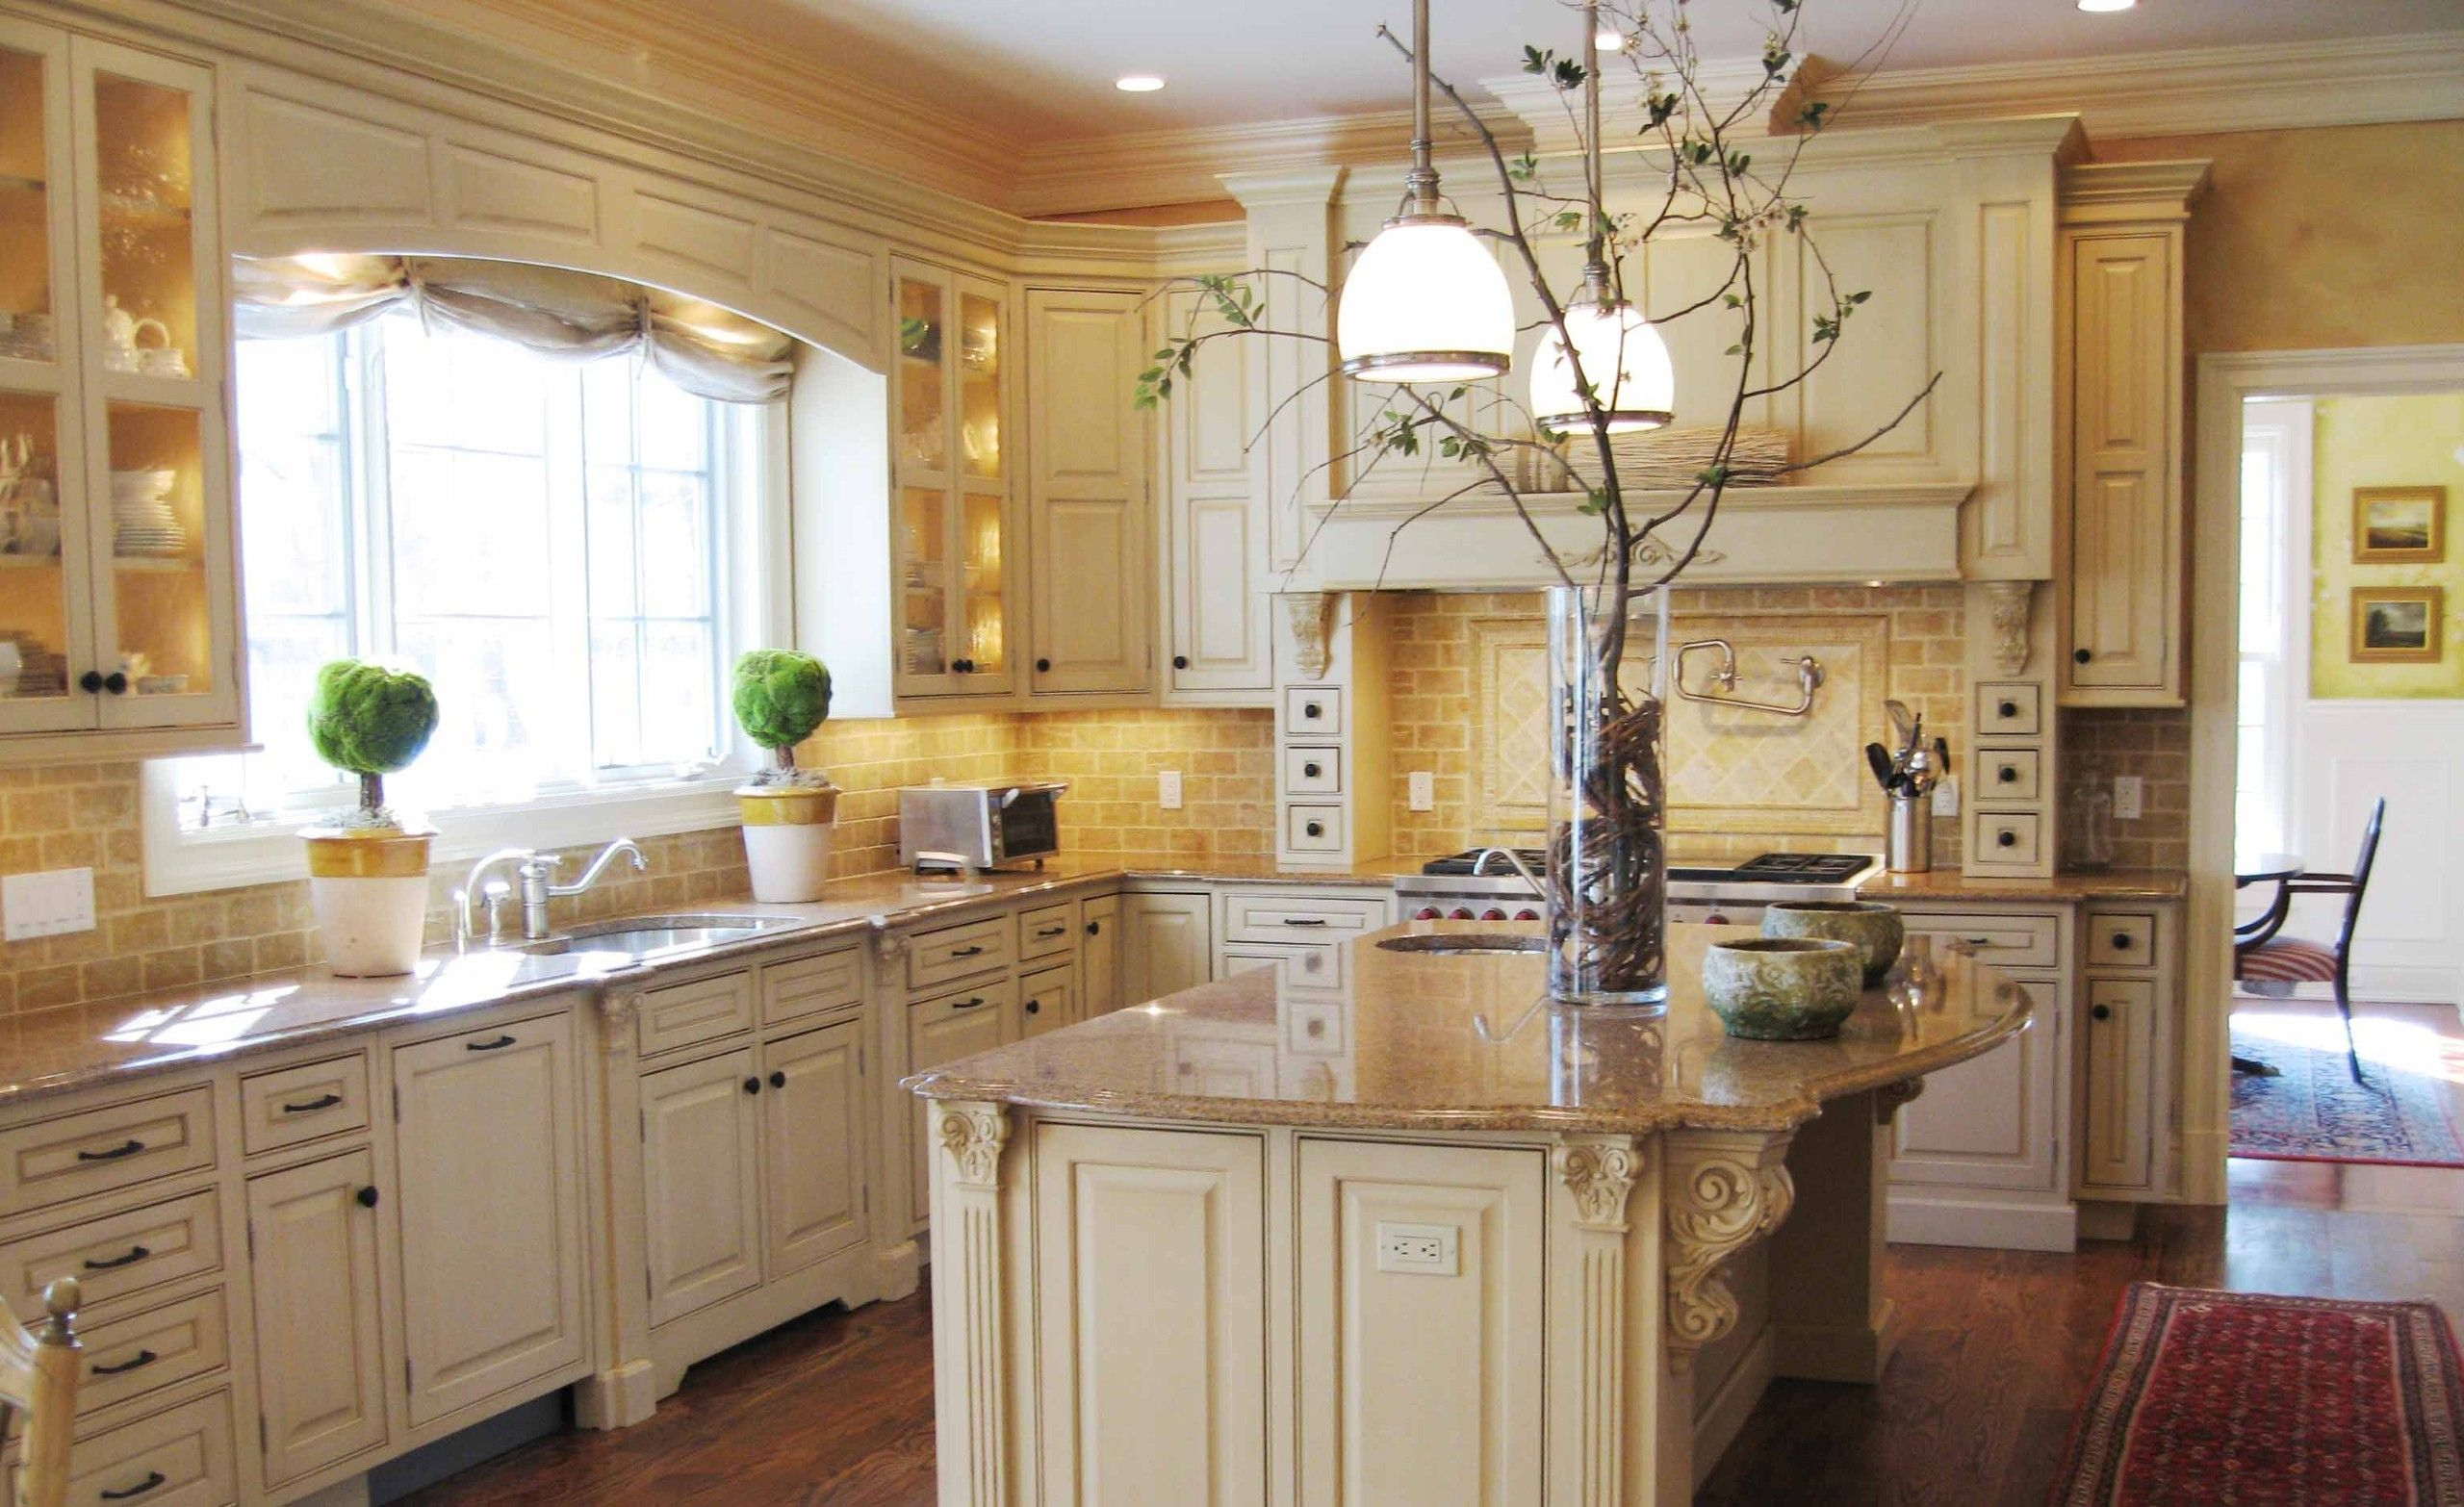 Terrific French Country Kitchen Decor With Broken White Cabinets And Island C